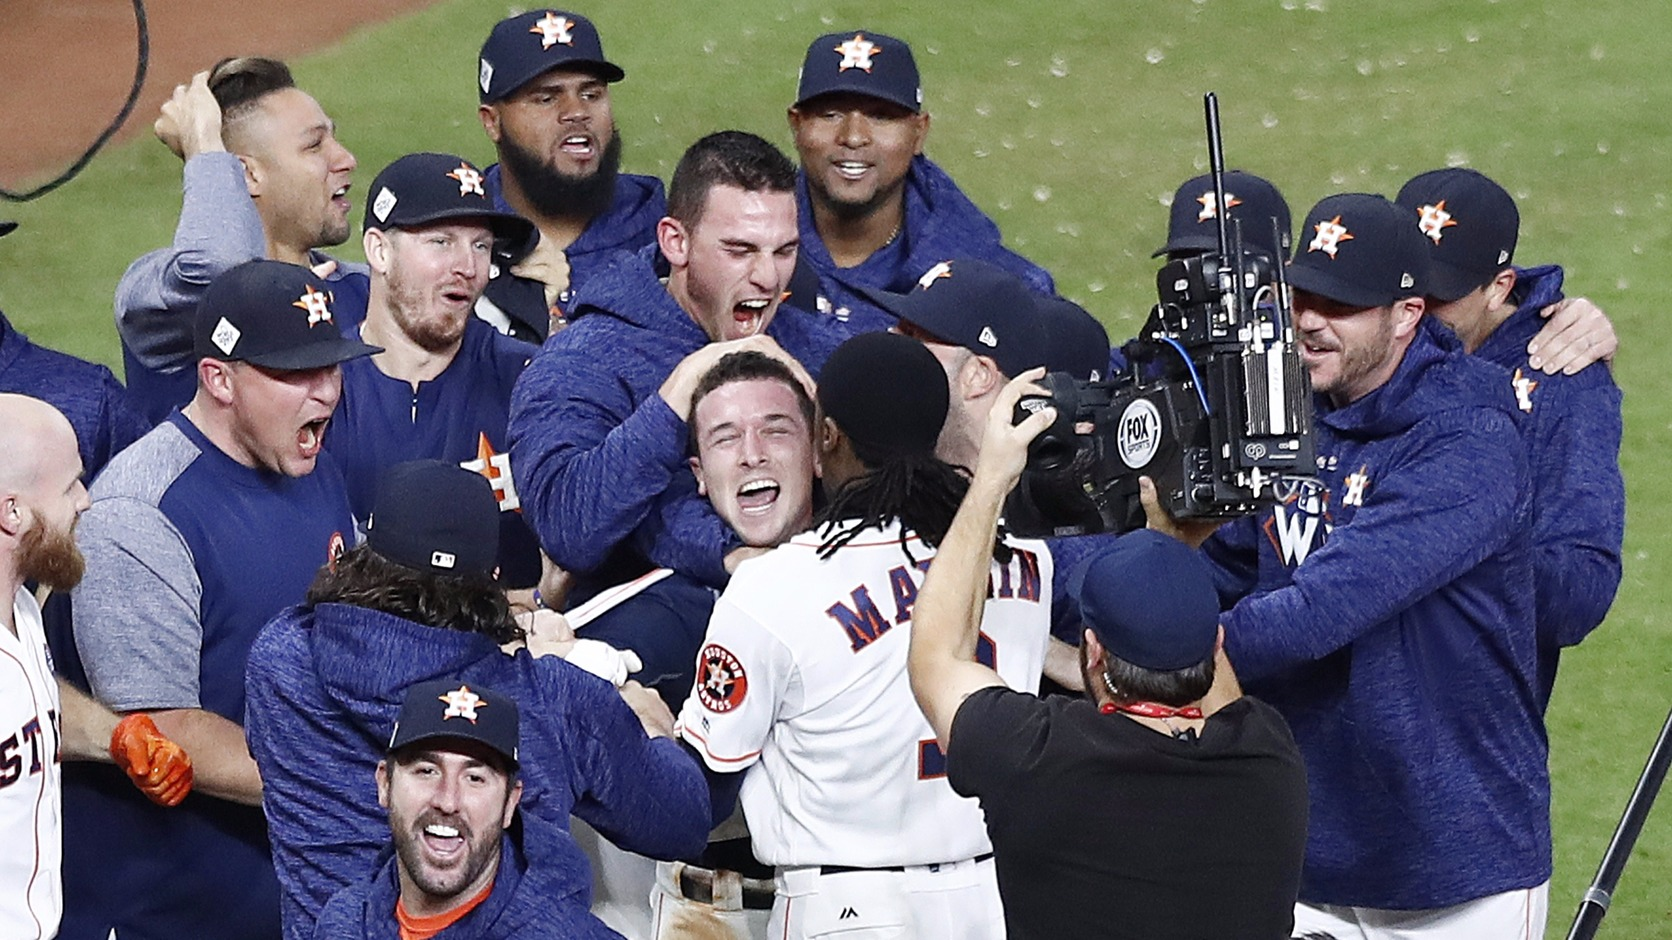 Houston Astros (Fotó: EPA/Larry W. Smith)